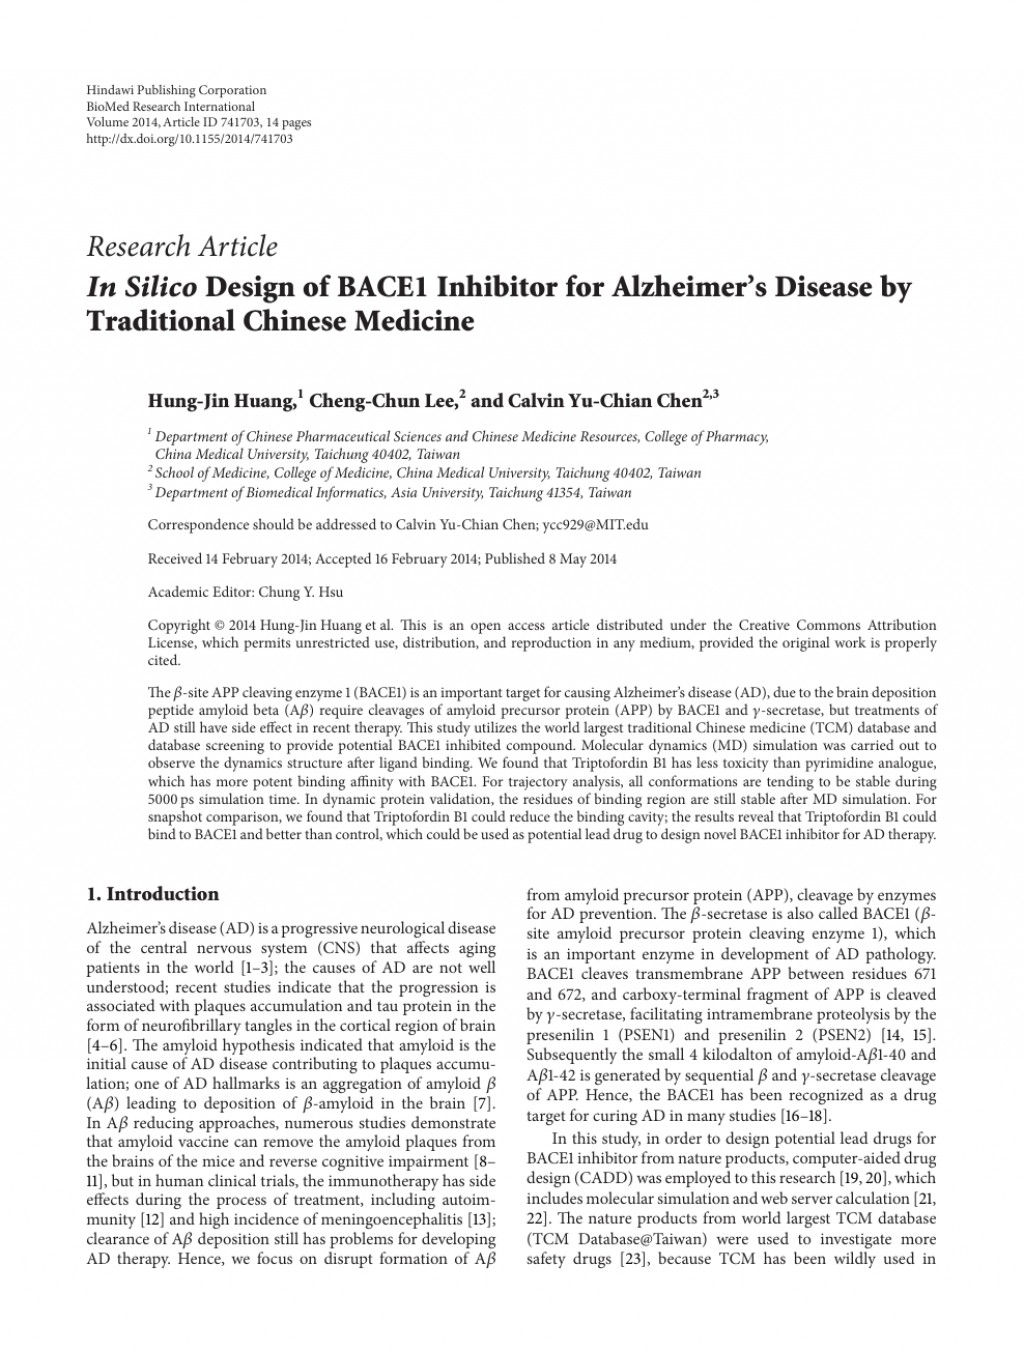 004 Alzheimers Disease Research Paper Topic Archaicawful Alzheimer's Topics Ideas Large